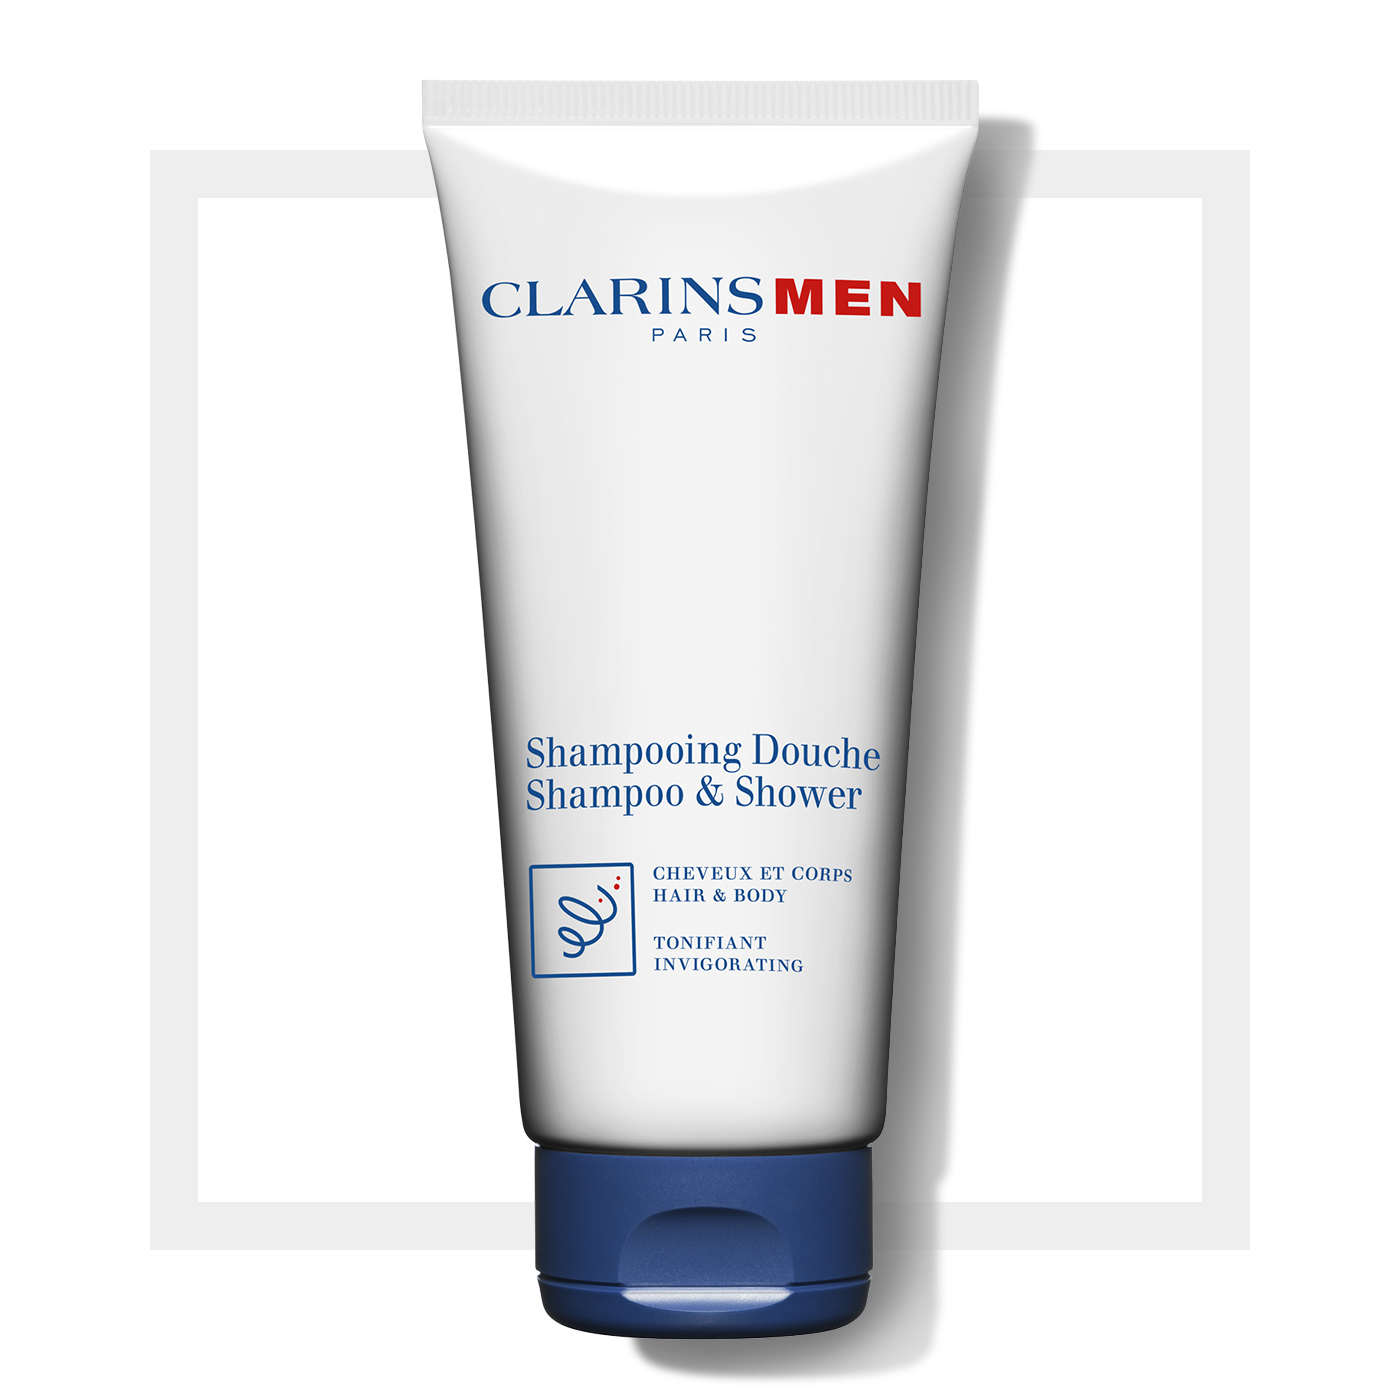 Shampoing Shampoing Shampoing Douche Clarinsmen Douche Douche Clarinsmen 4jLqc35AR